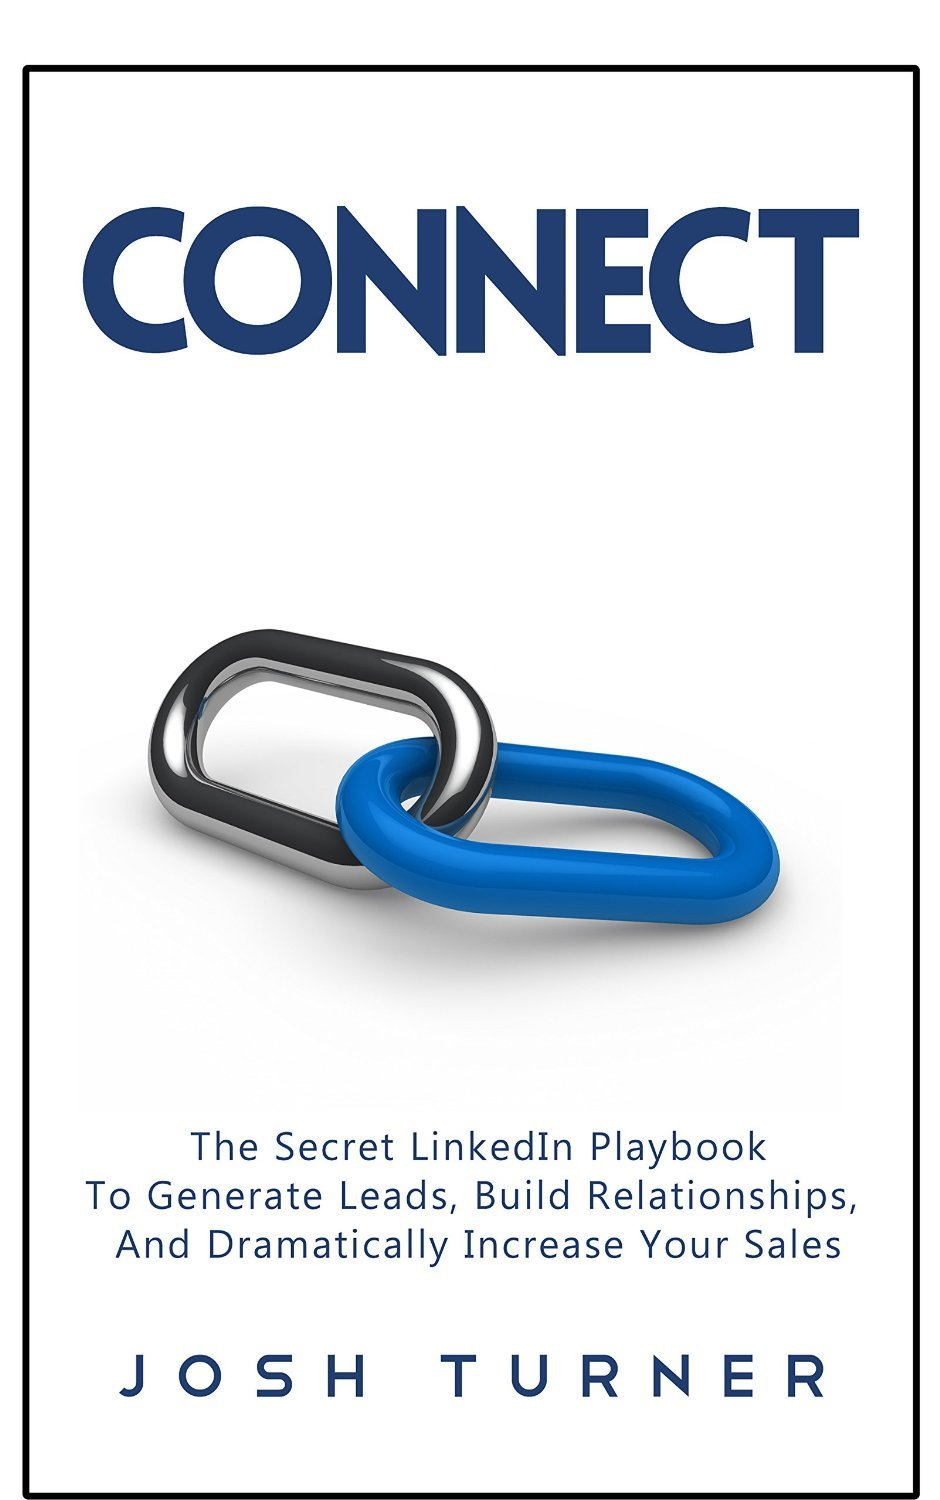 Connect: The Secret LinkedIn Playbook To Generate Leads, Build Relationships, And Dramatically Increase Your Sales  by  Josh Turner